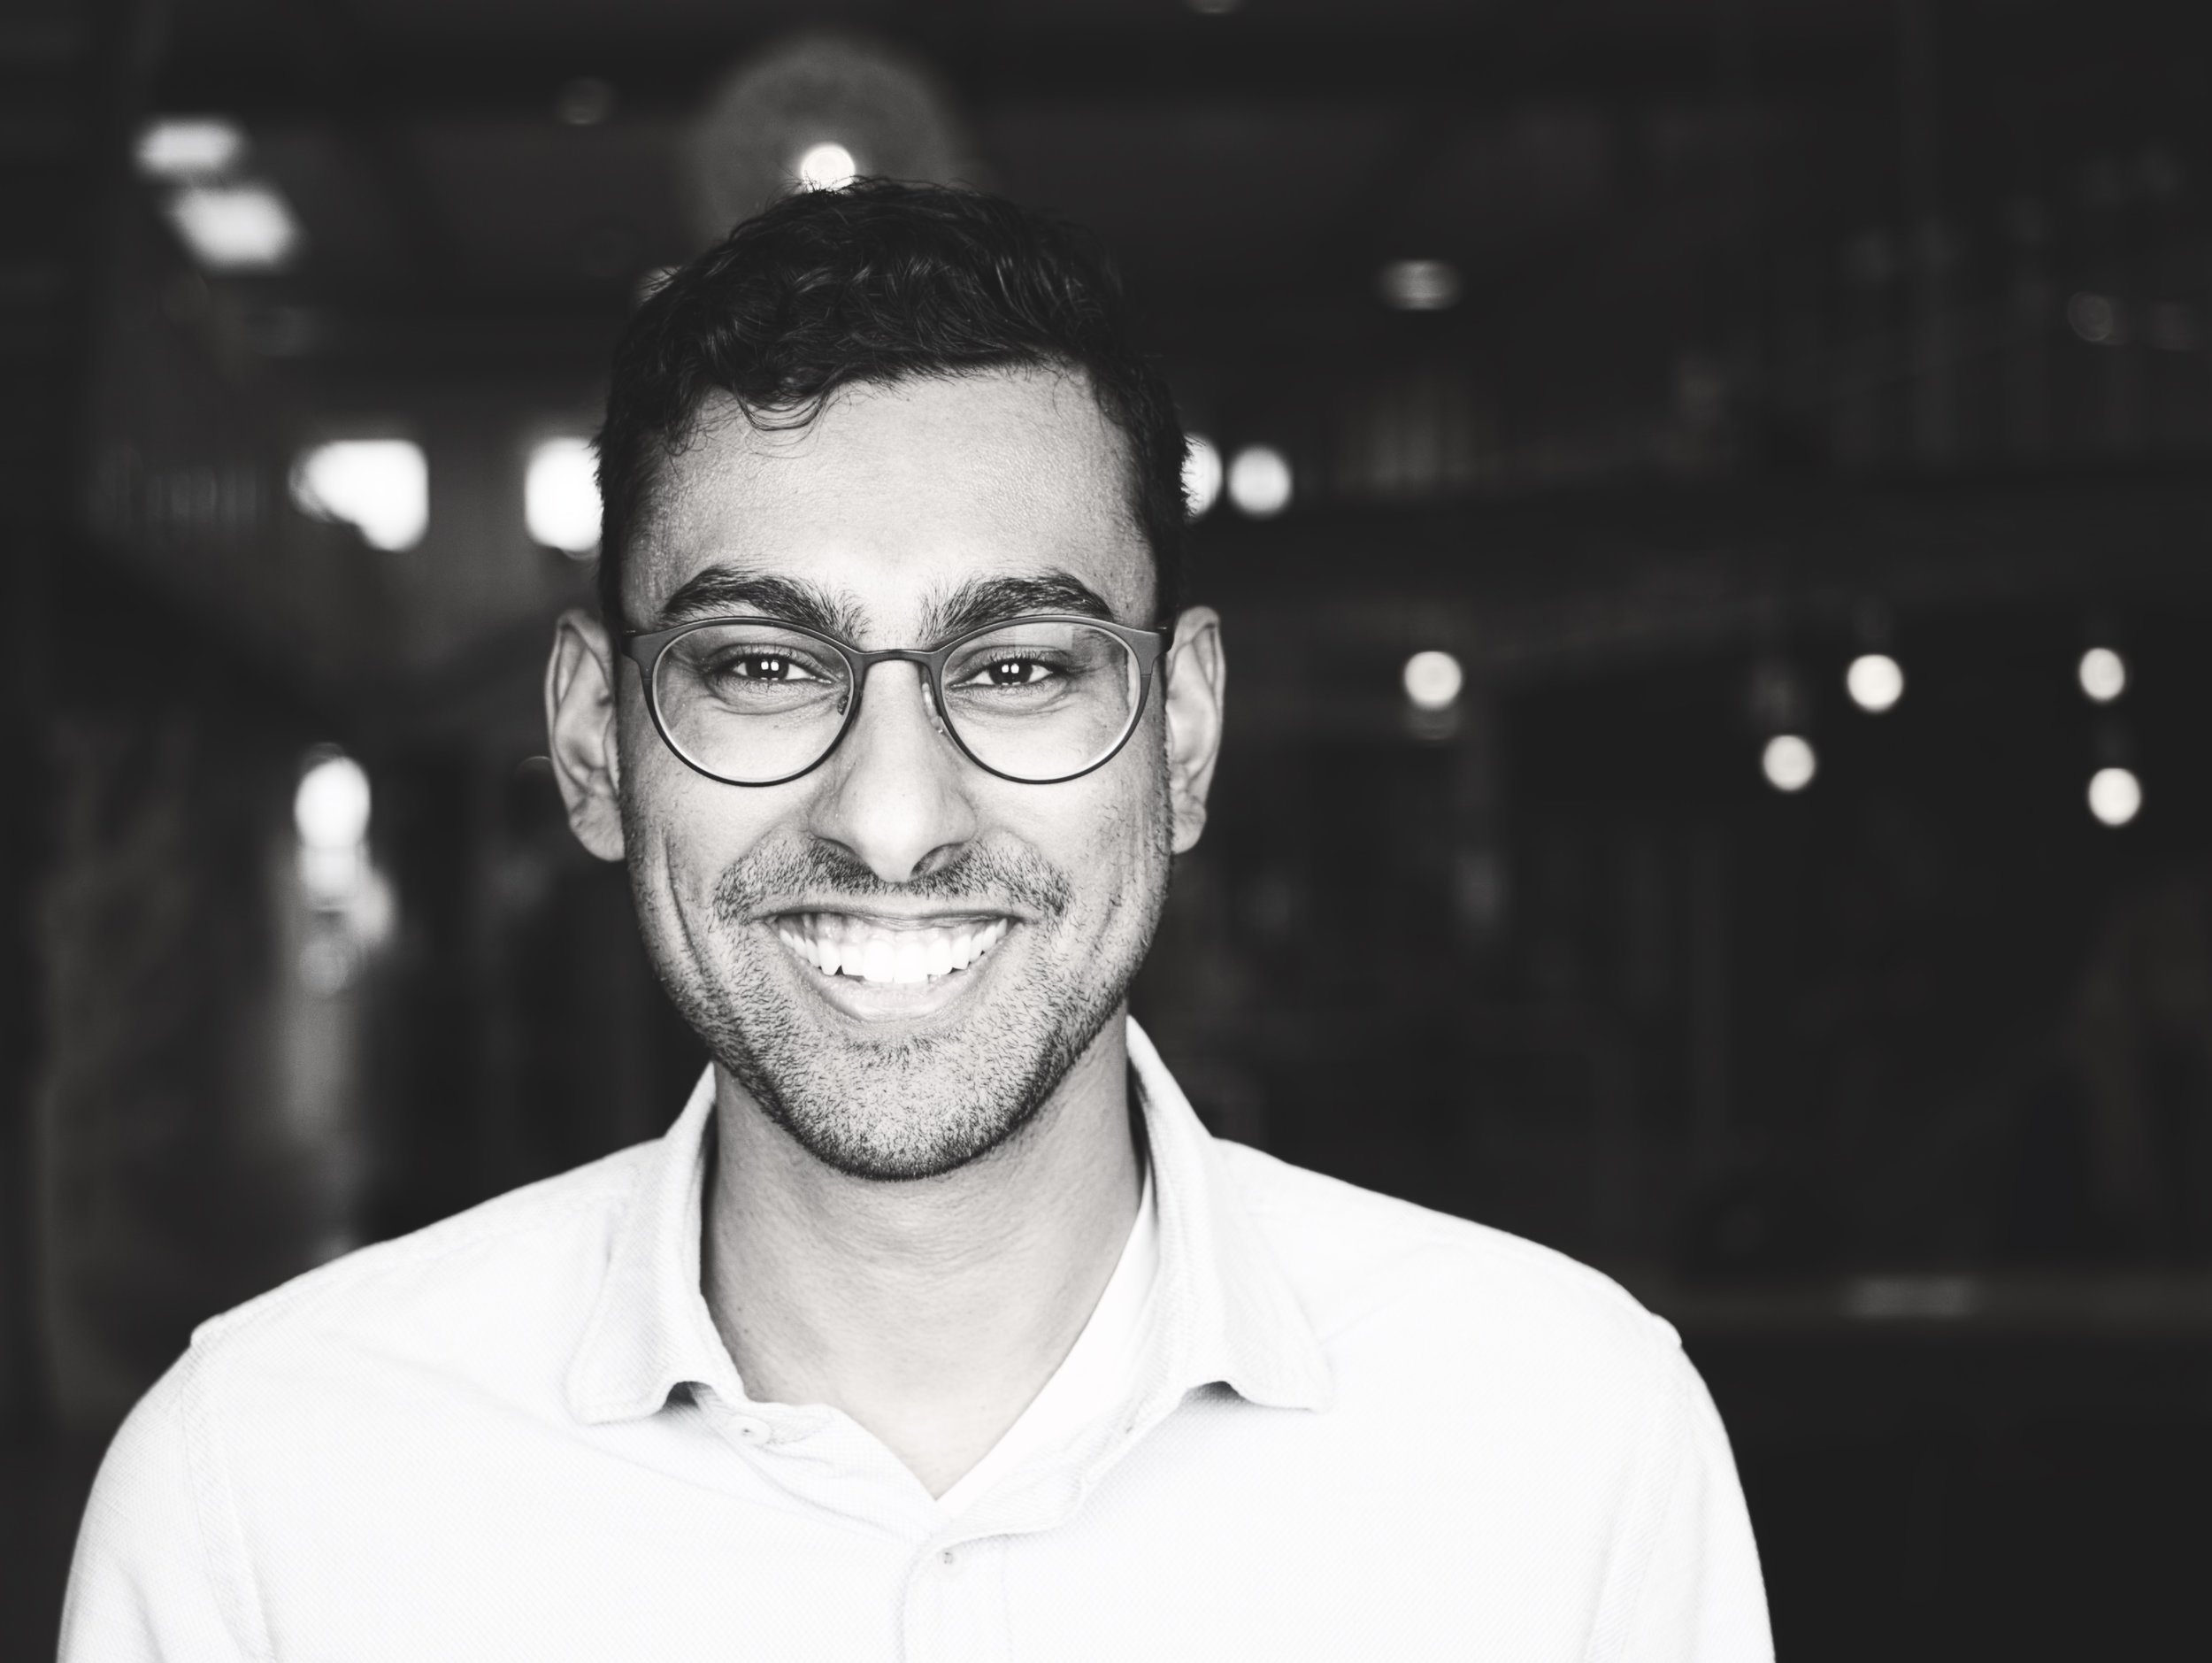 ARVIND JAGESSER - CTO - Arvind co-founded Milvum (a digital transformation lab) in 2012 and joined Circularise as CTO in 2017. He is an advocate for the AI and blockchain technologies, making use of them with his teams at Milvum. In 2017, they were awarded a prize in the Dutch Blockchain hackathon.LinkedIn